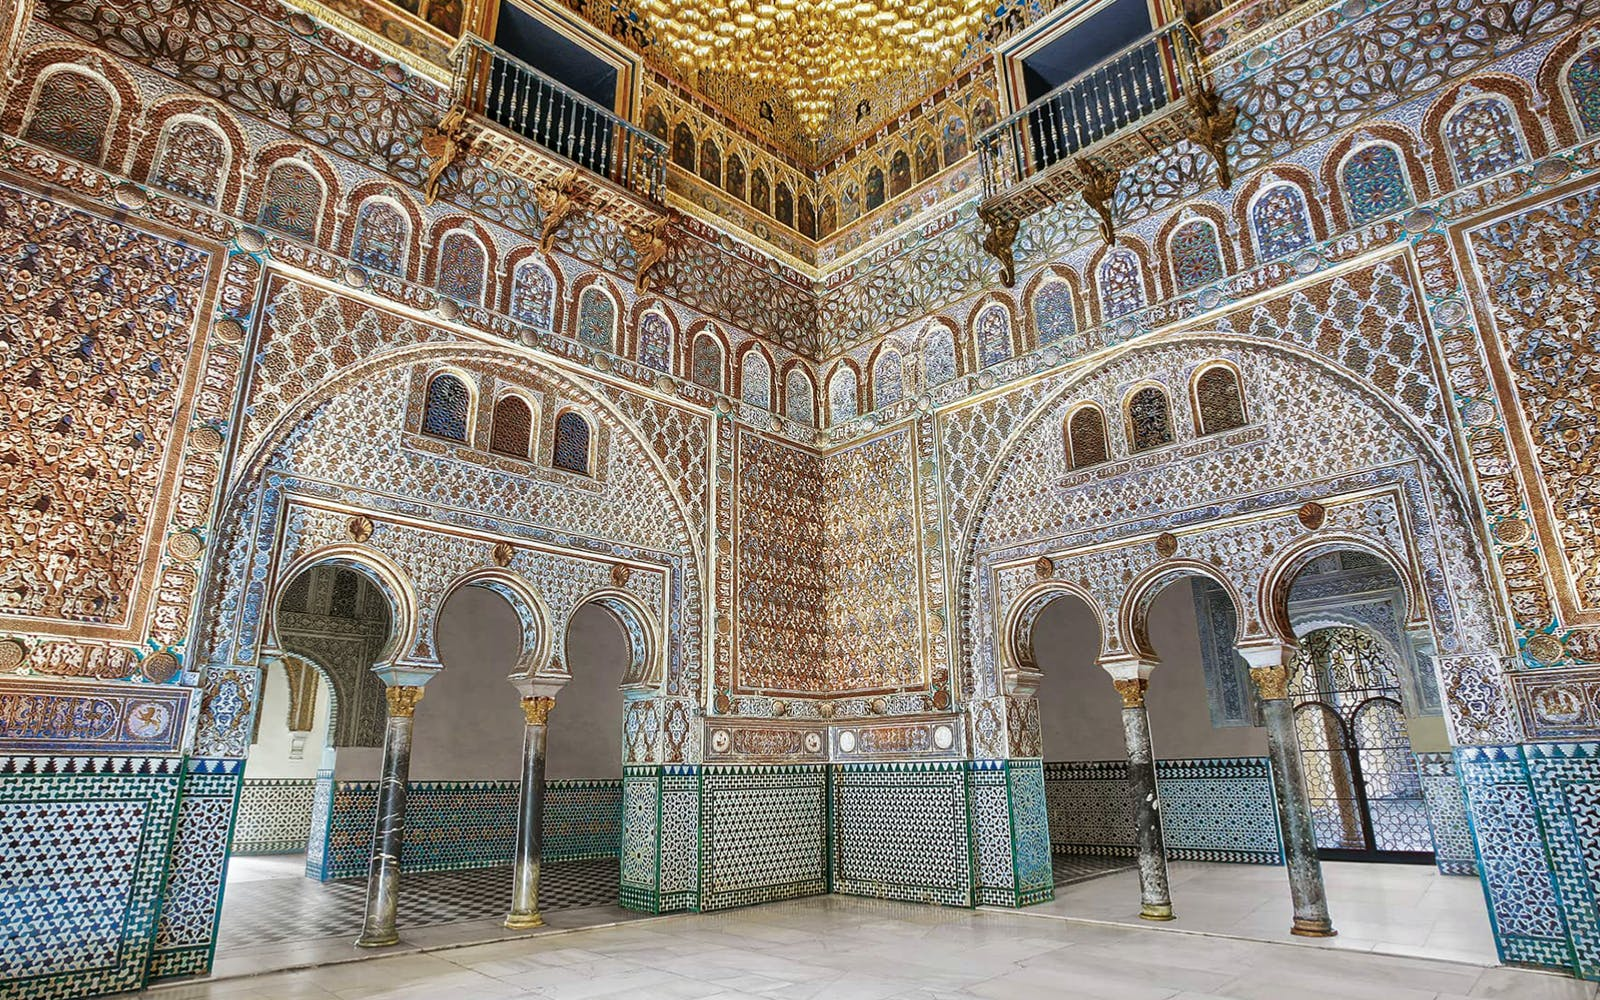 Fast Track Guided Tour to Alcazar of Seville